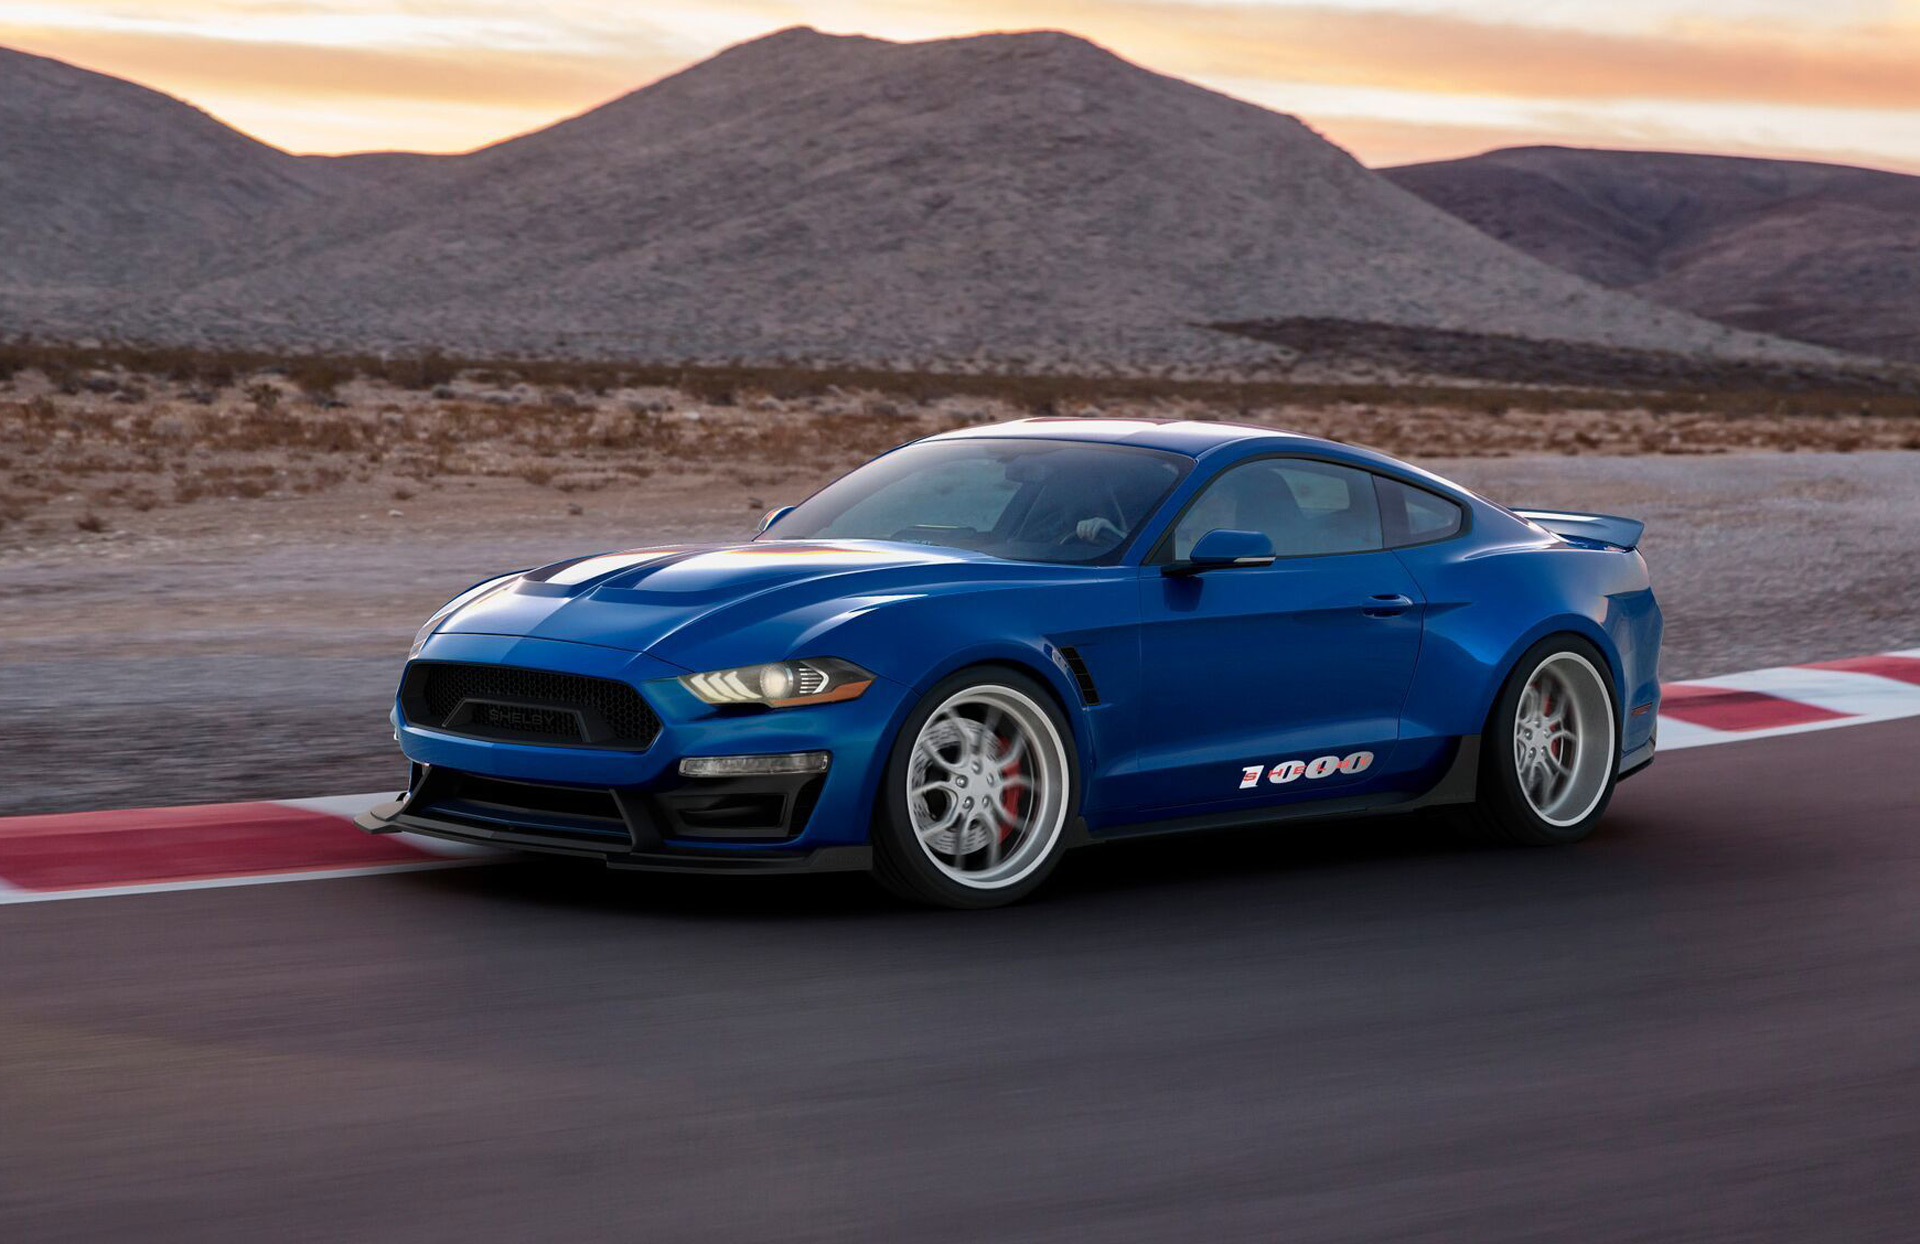 1 000 Horsepower Shelby Mustang Debuts At 2017 Sema Show